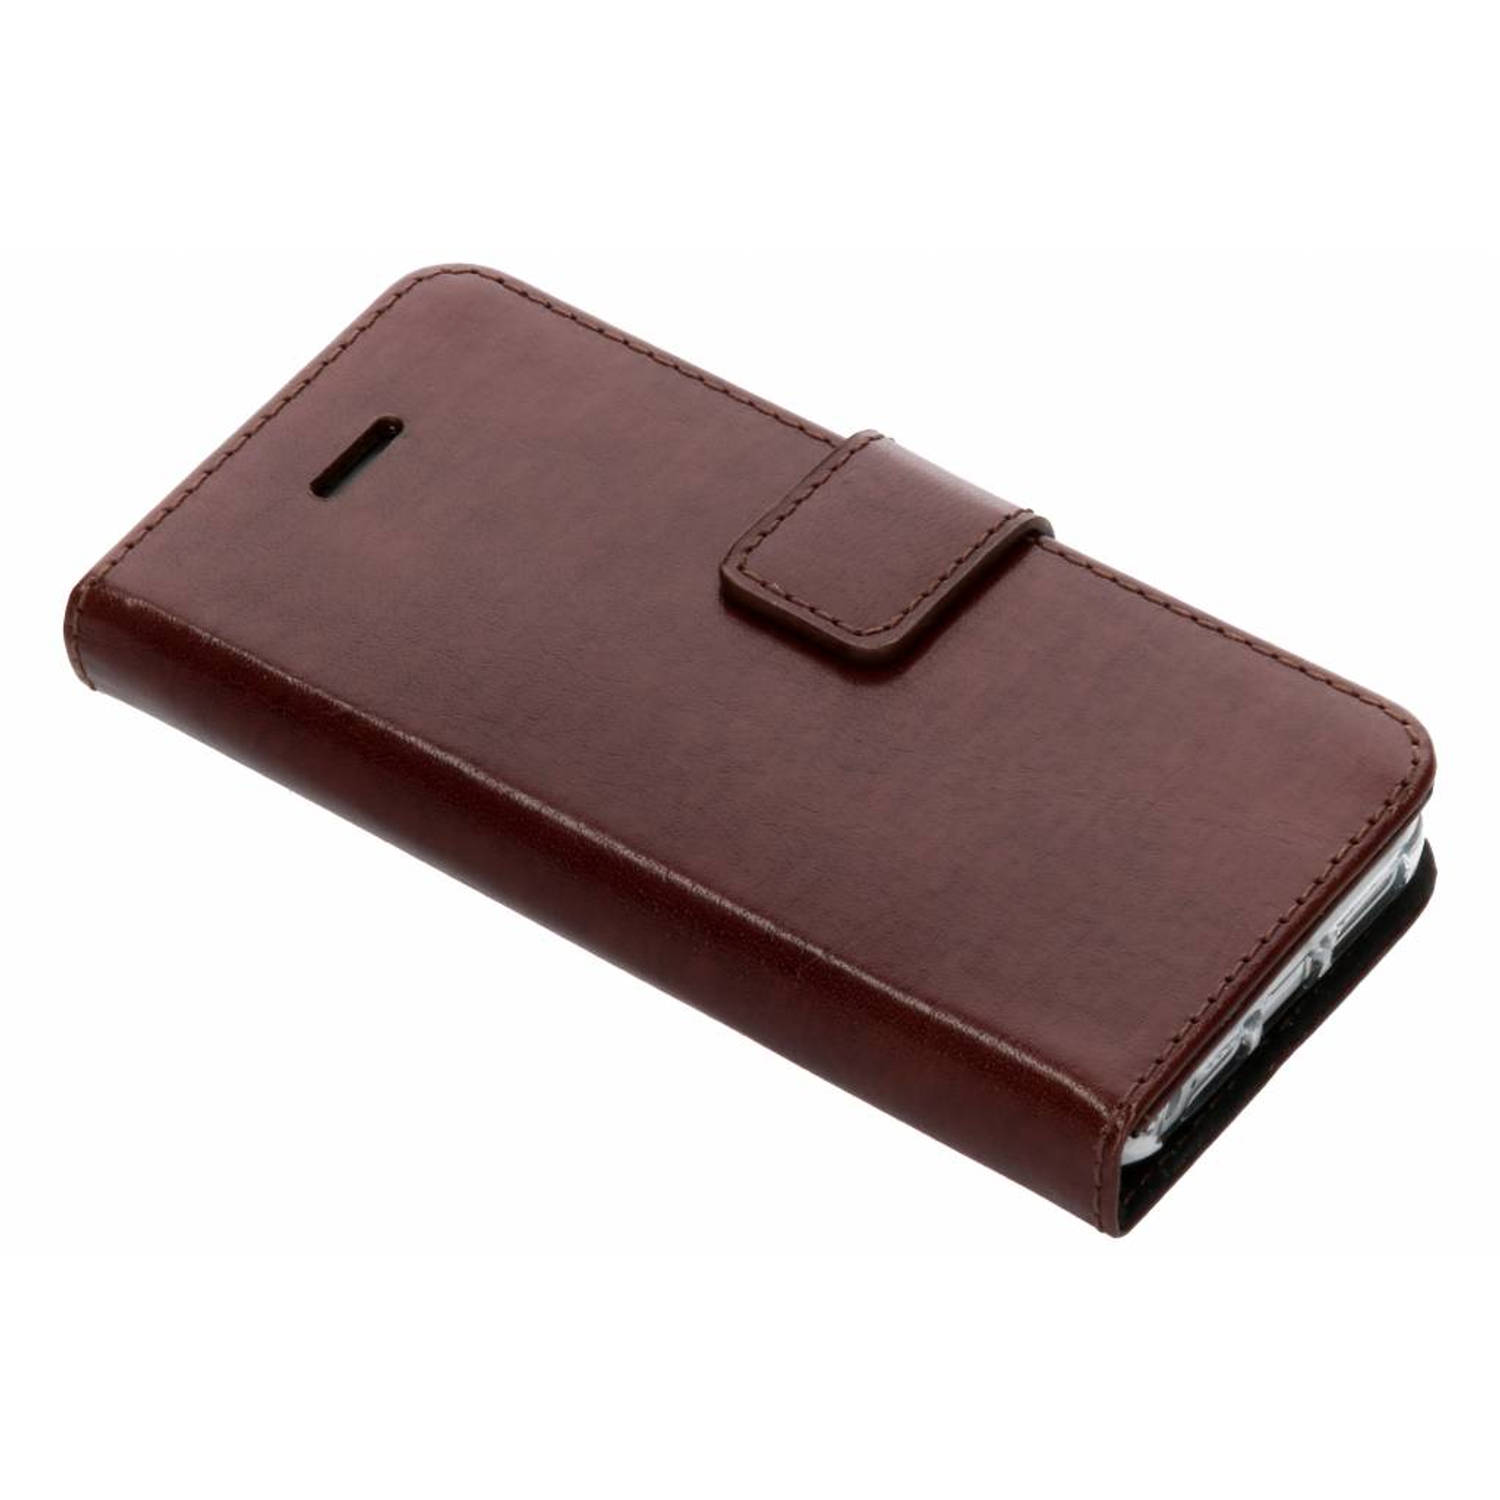 Bruine Booklet Leather voor de iPhone 5 / 5s / SE